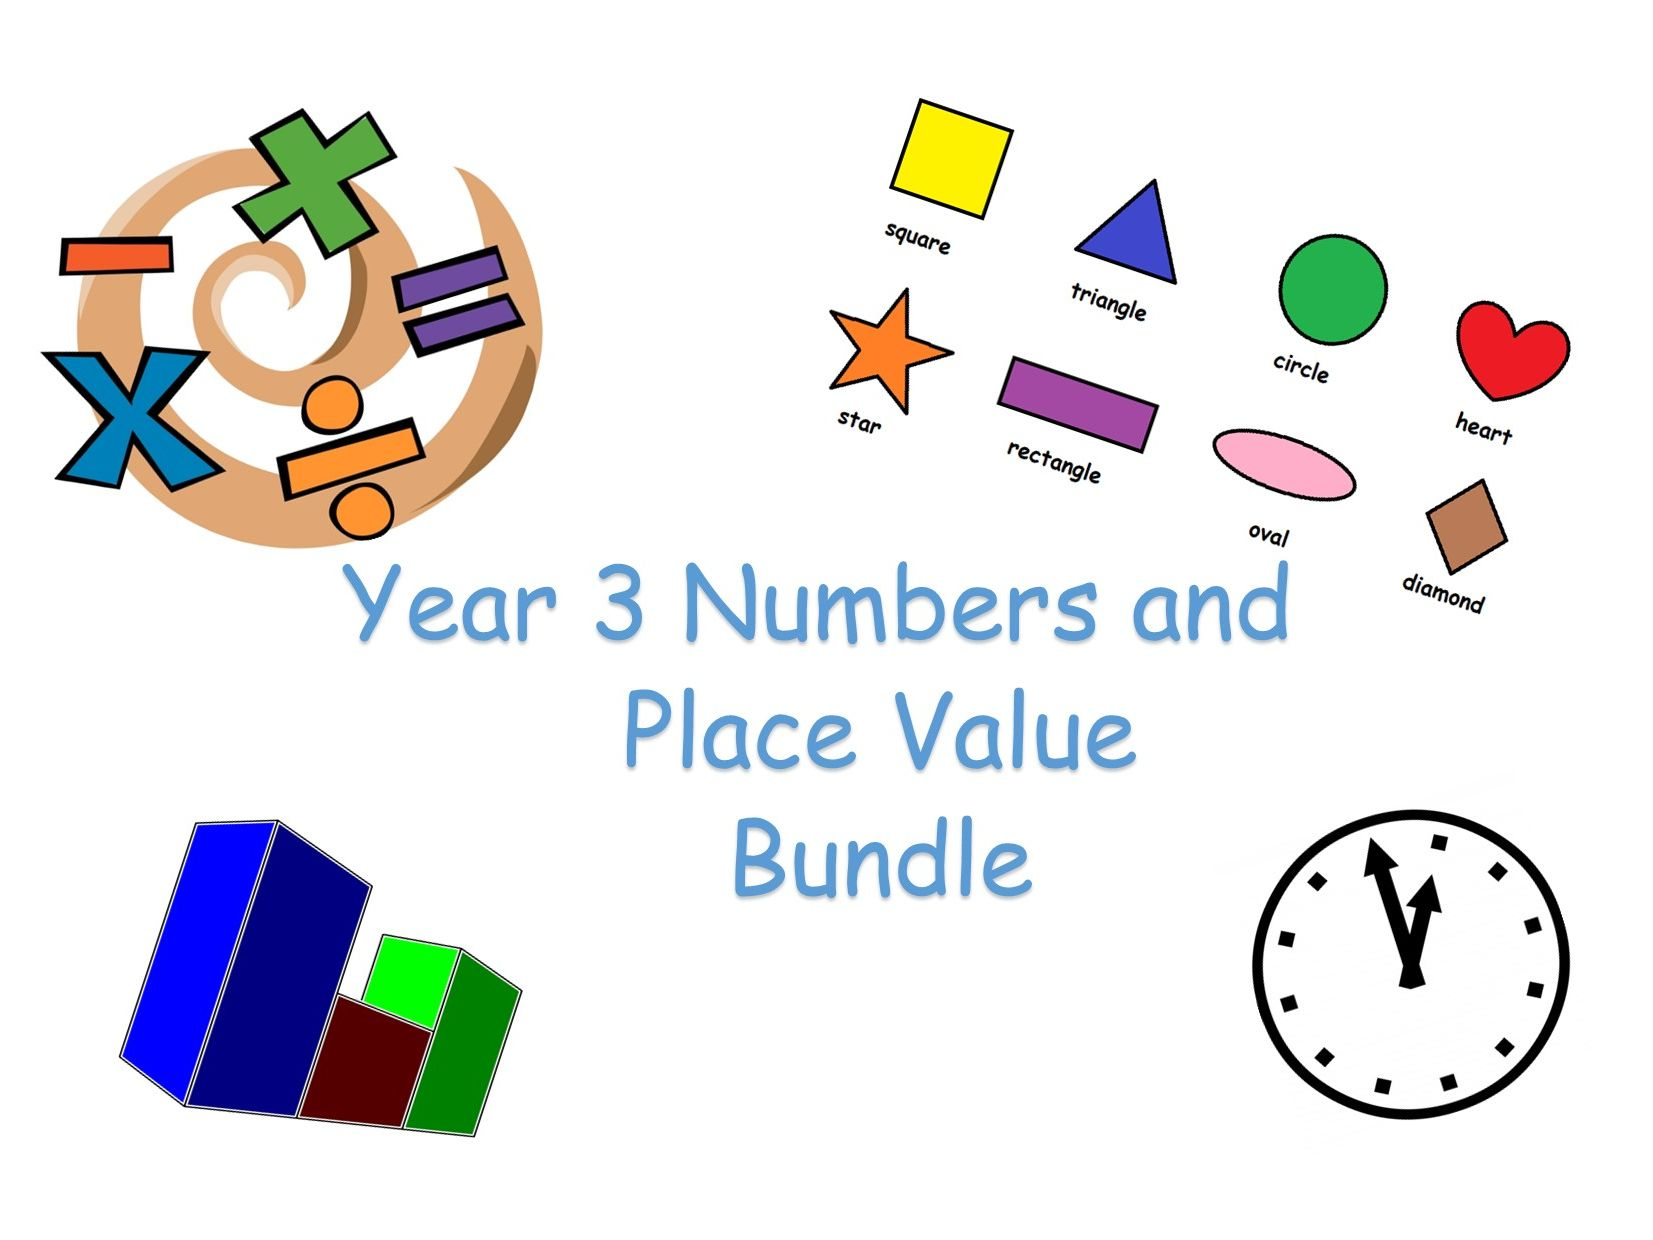 Y3 Maths - Number and Place Value Bundle